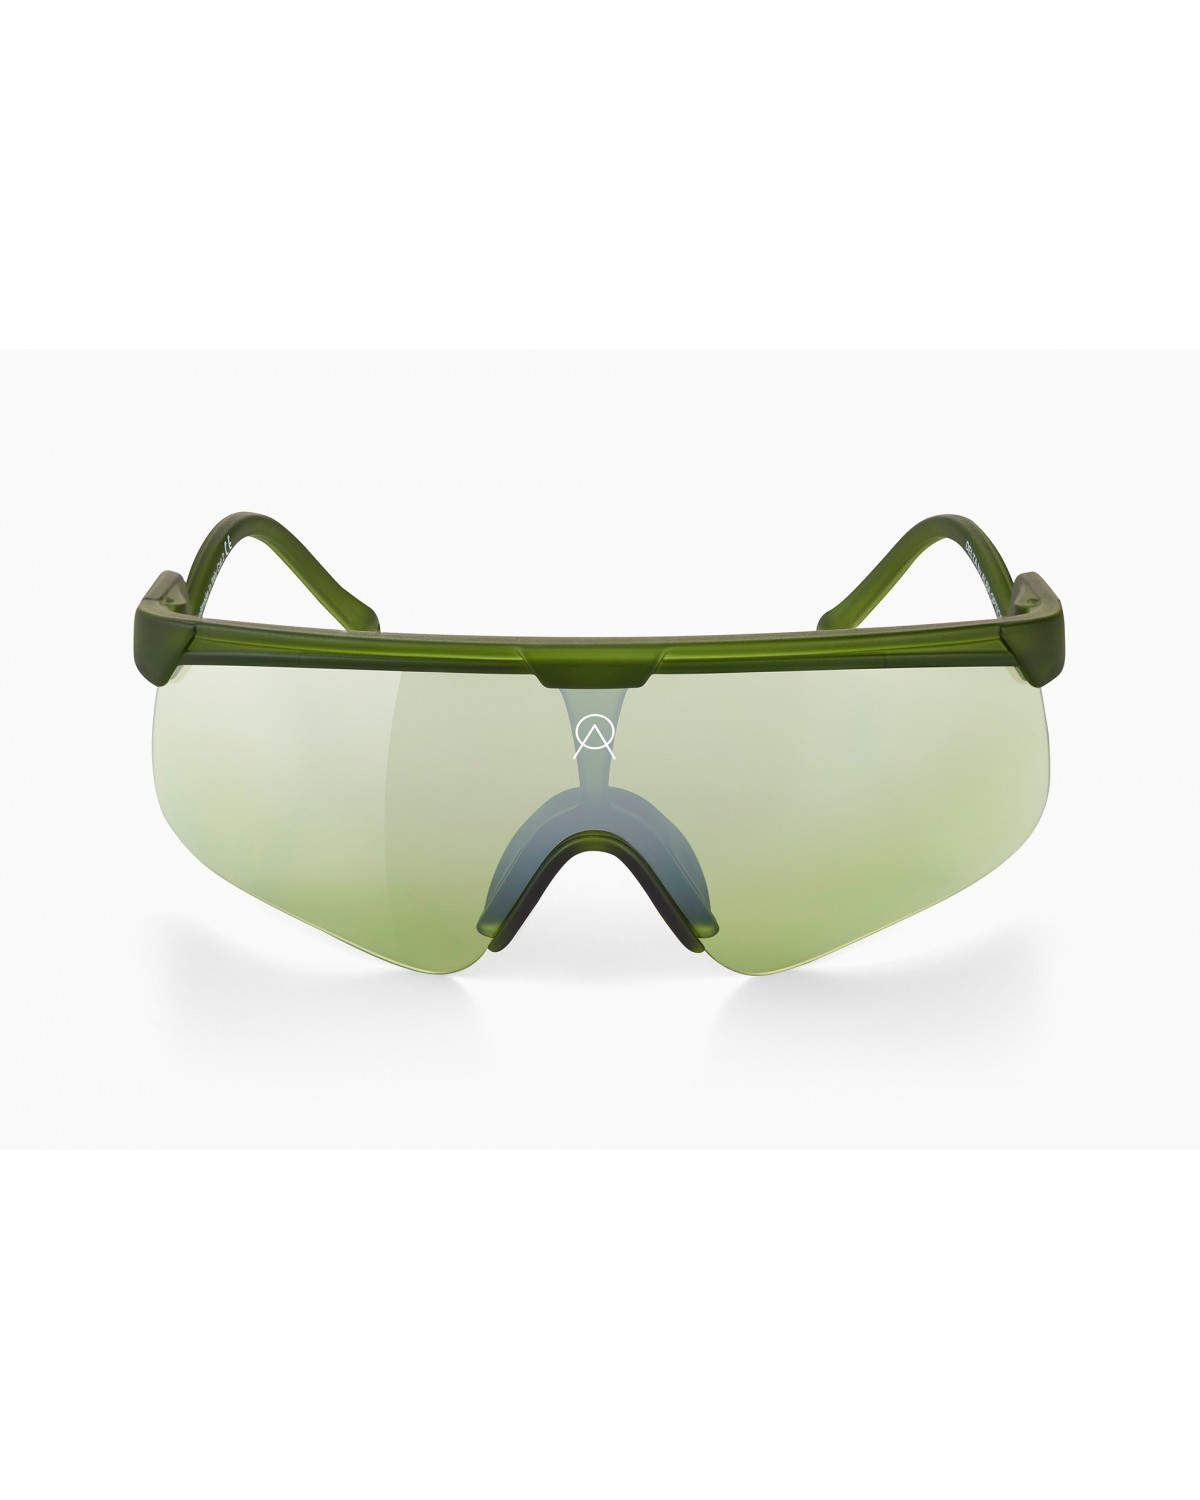 Alba Optics Delta Mr Green Erba green Sonnenbrille